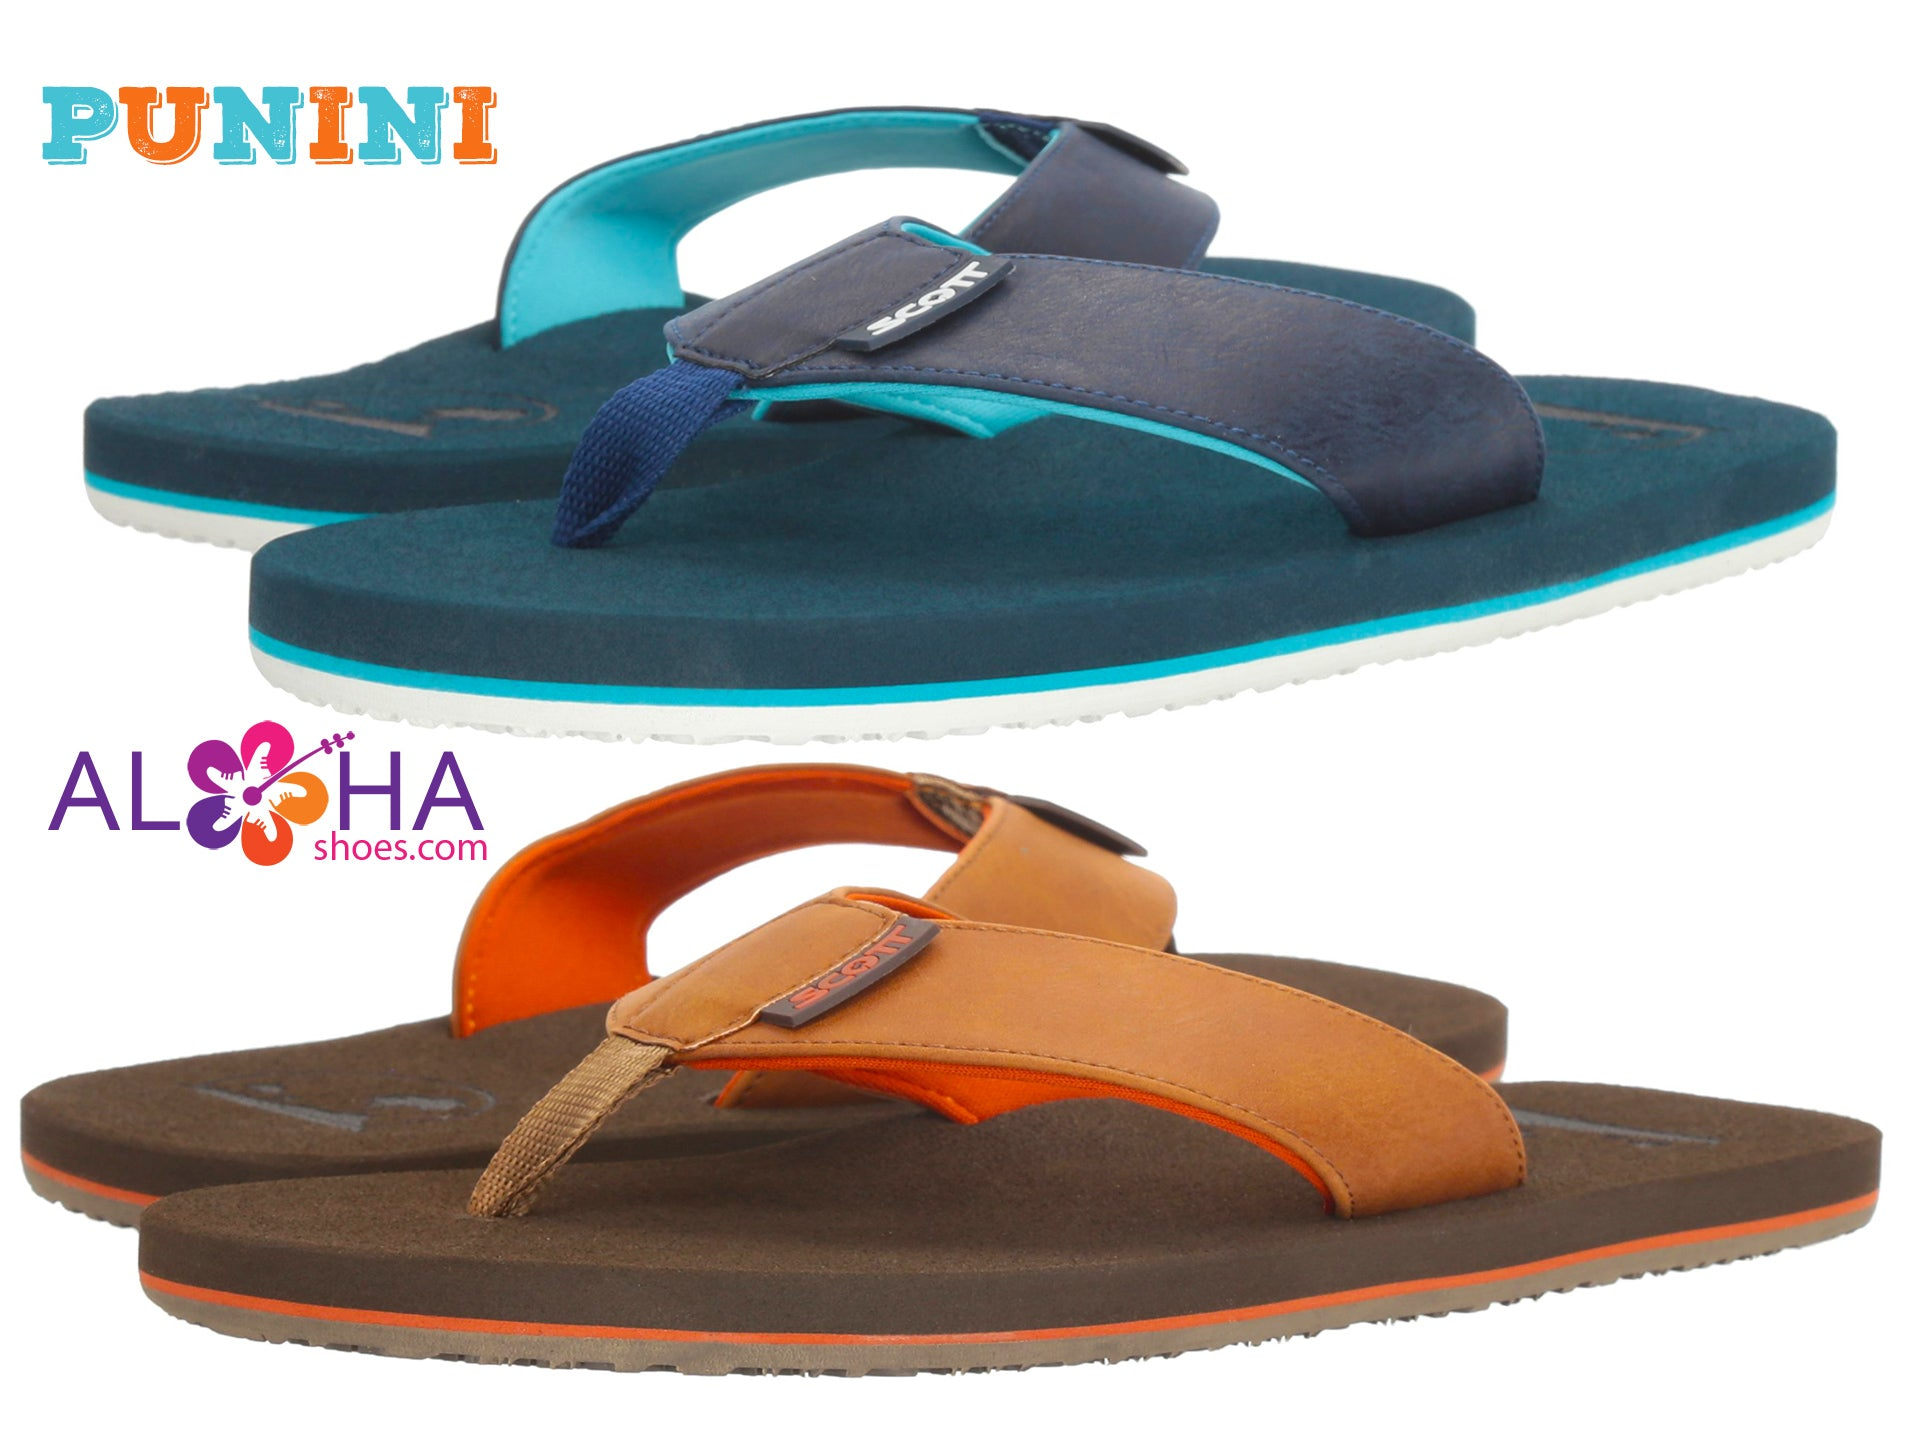 Punini Vegan Leather Sandals with Neoprene - AlohaShoes.com